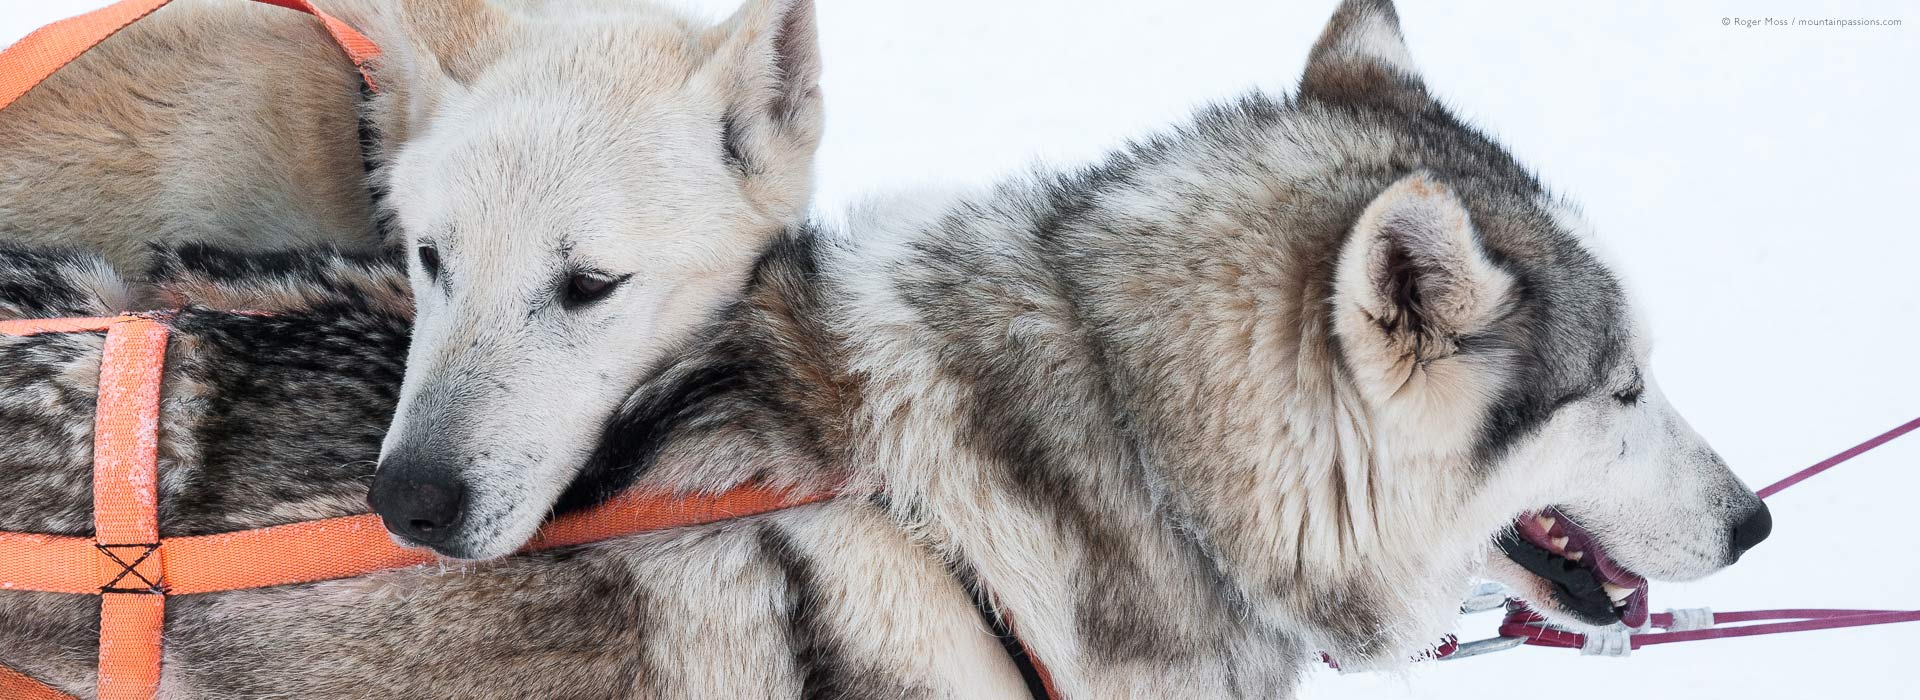 Close-up of heads of two sled dogs, dog-sledding at La Chapelle d'Abondance, Portes du Soleil ski area, French Alps.